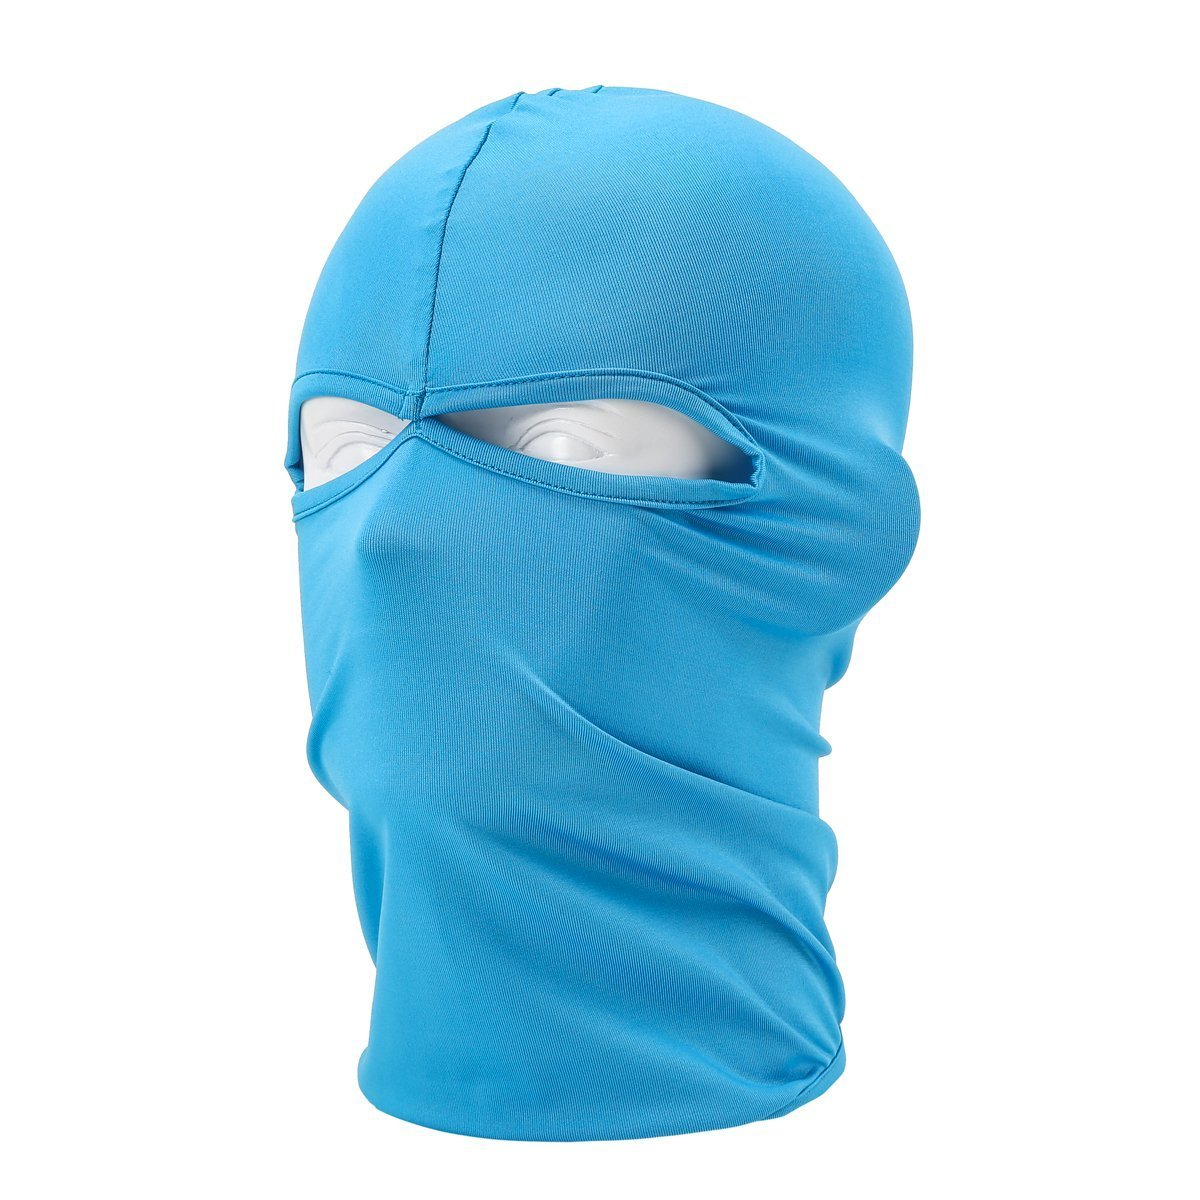 lilyy Outdoor Cycling Sports Face Mask Cool Fashionable Ultra Thin Balaclava